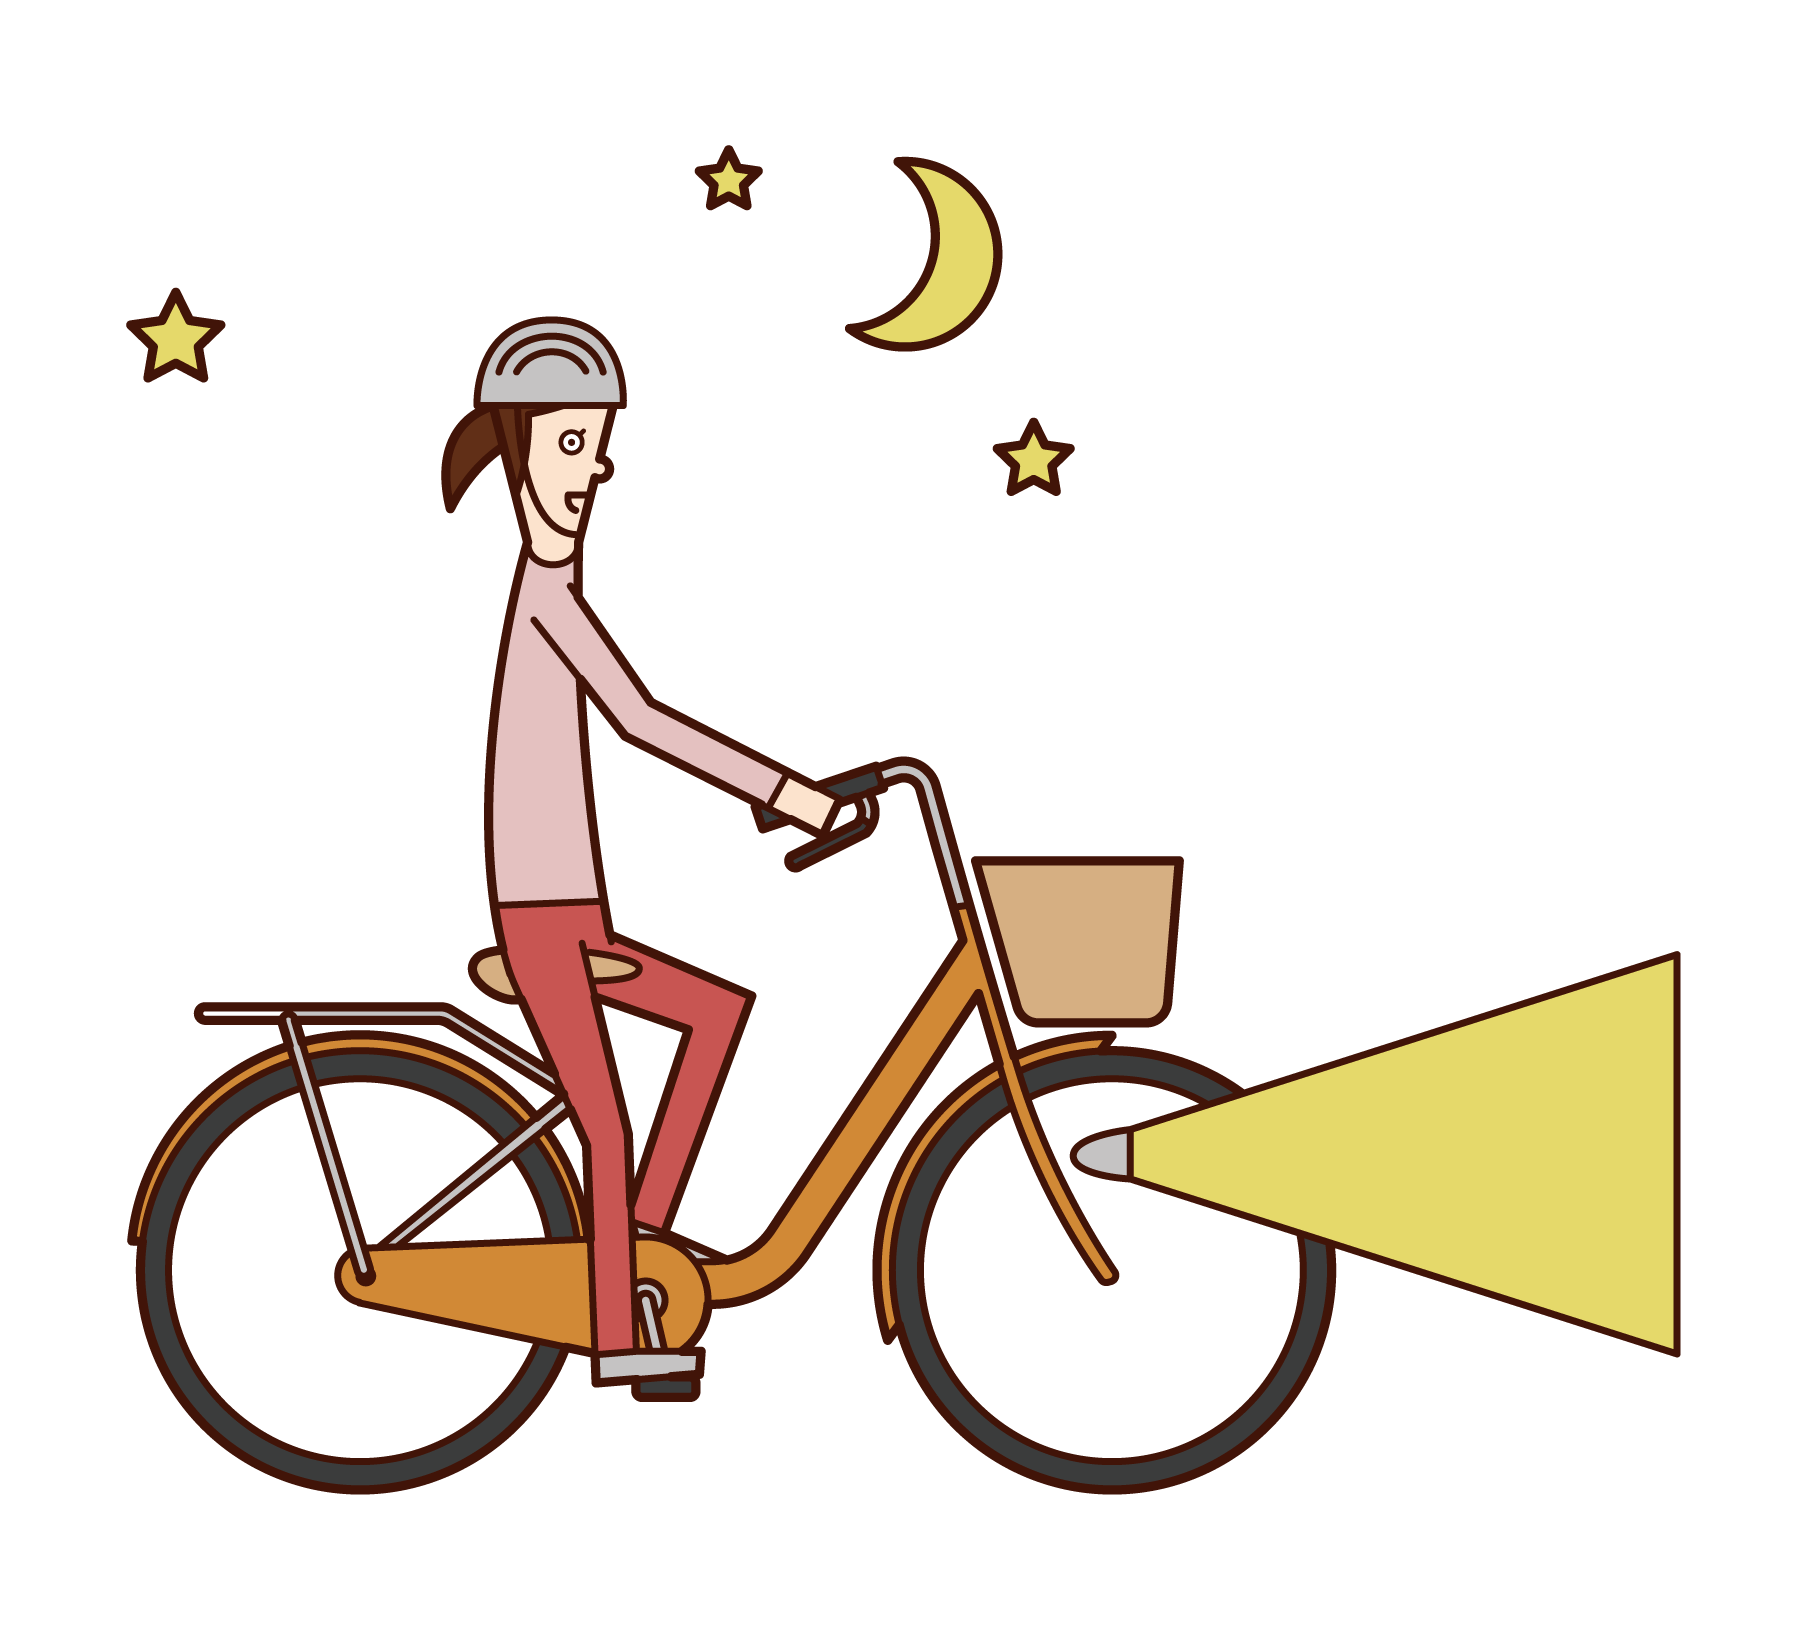 Illustration of a woman riding a bicycle with a light on it